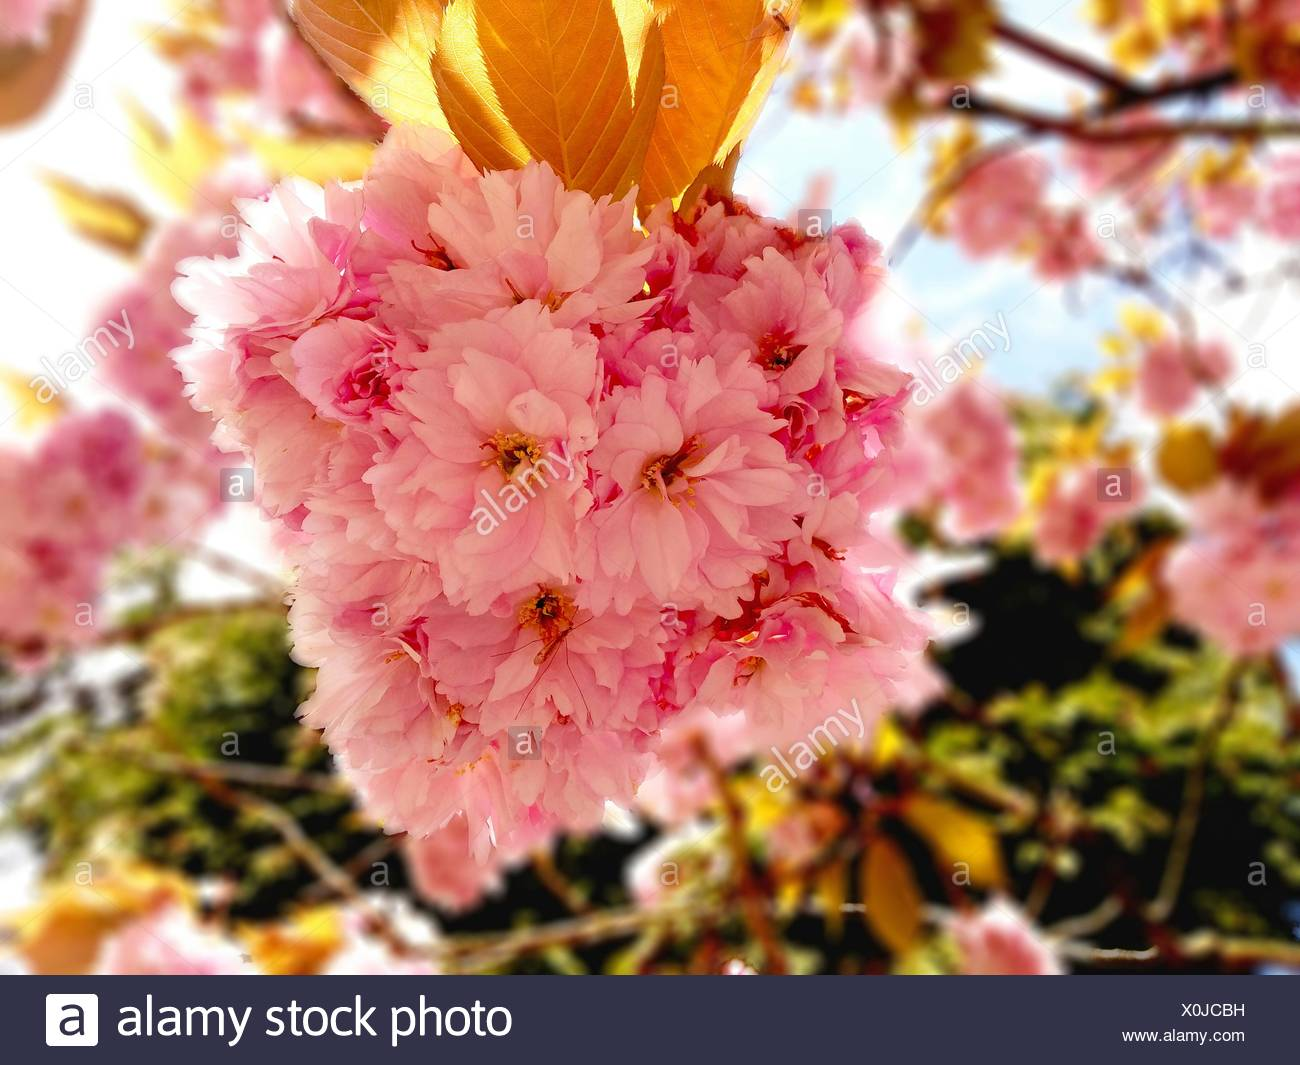 Close Up Of Pink Flowers Growing On Tree Stock Photo 275770757 Alamy